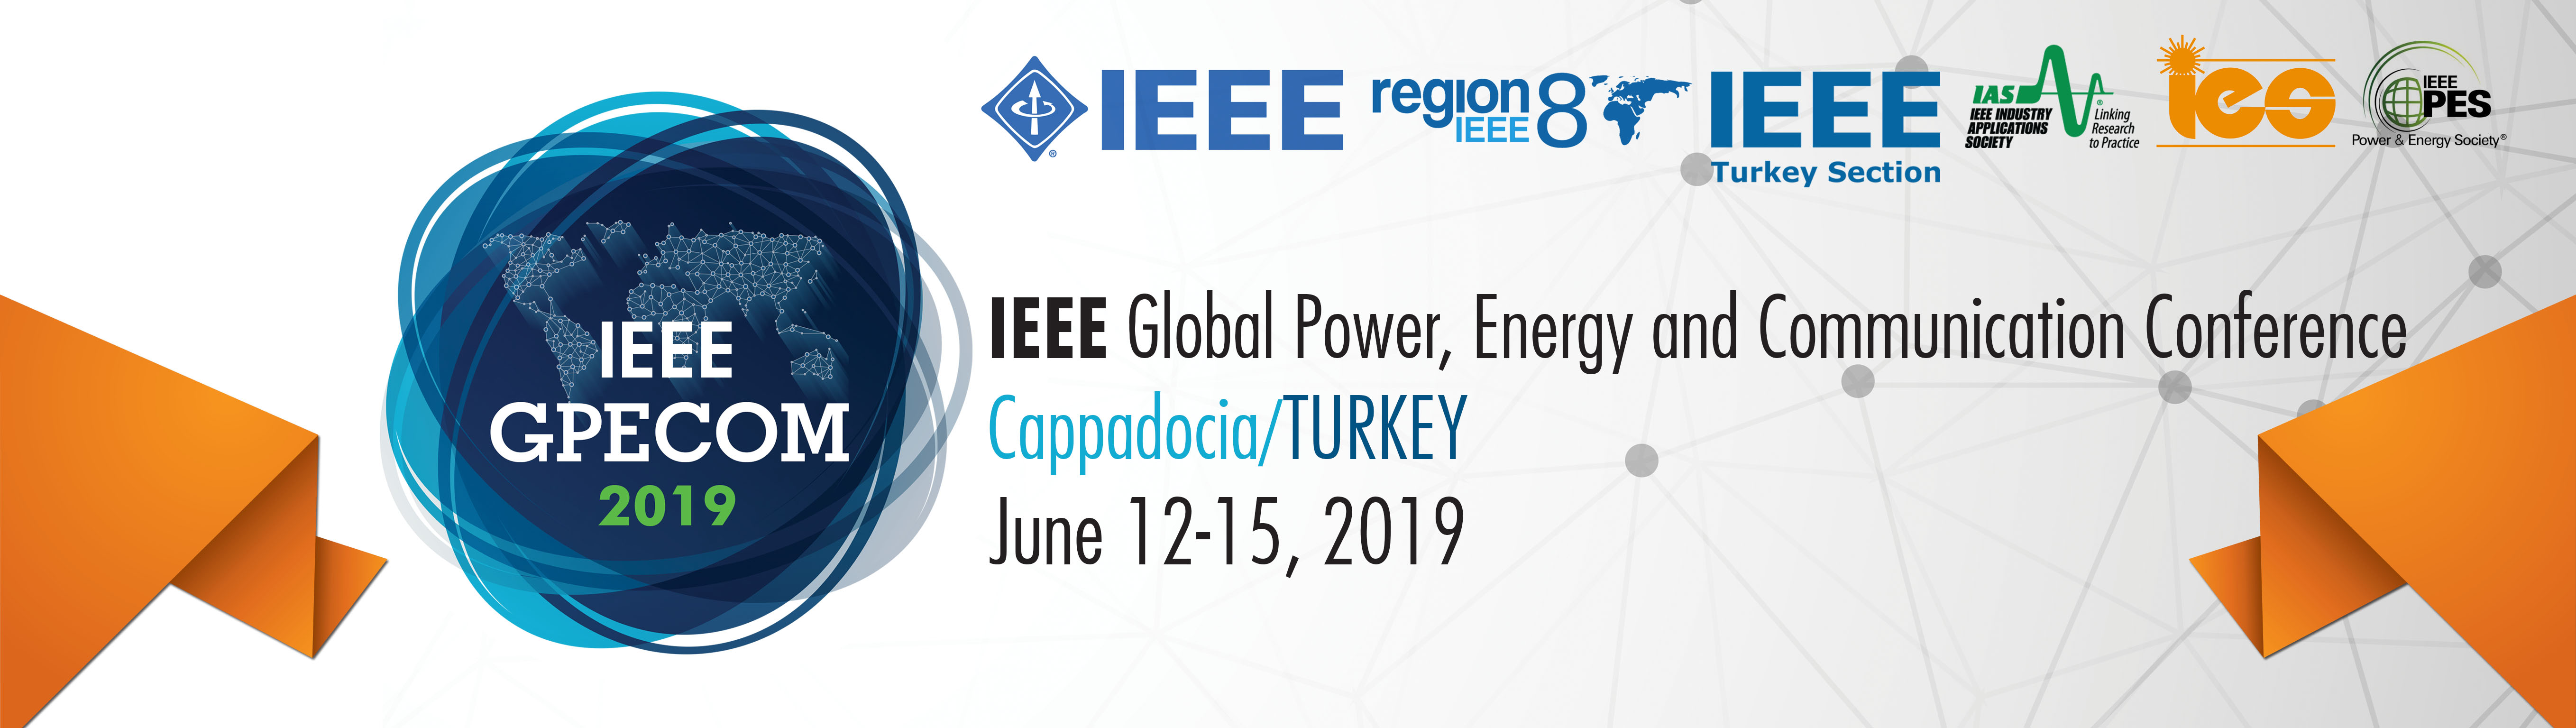 IEEE GPECOM Global Power, Energy and Communication Conference